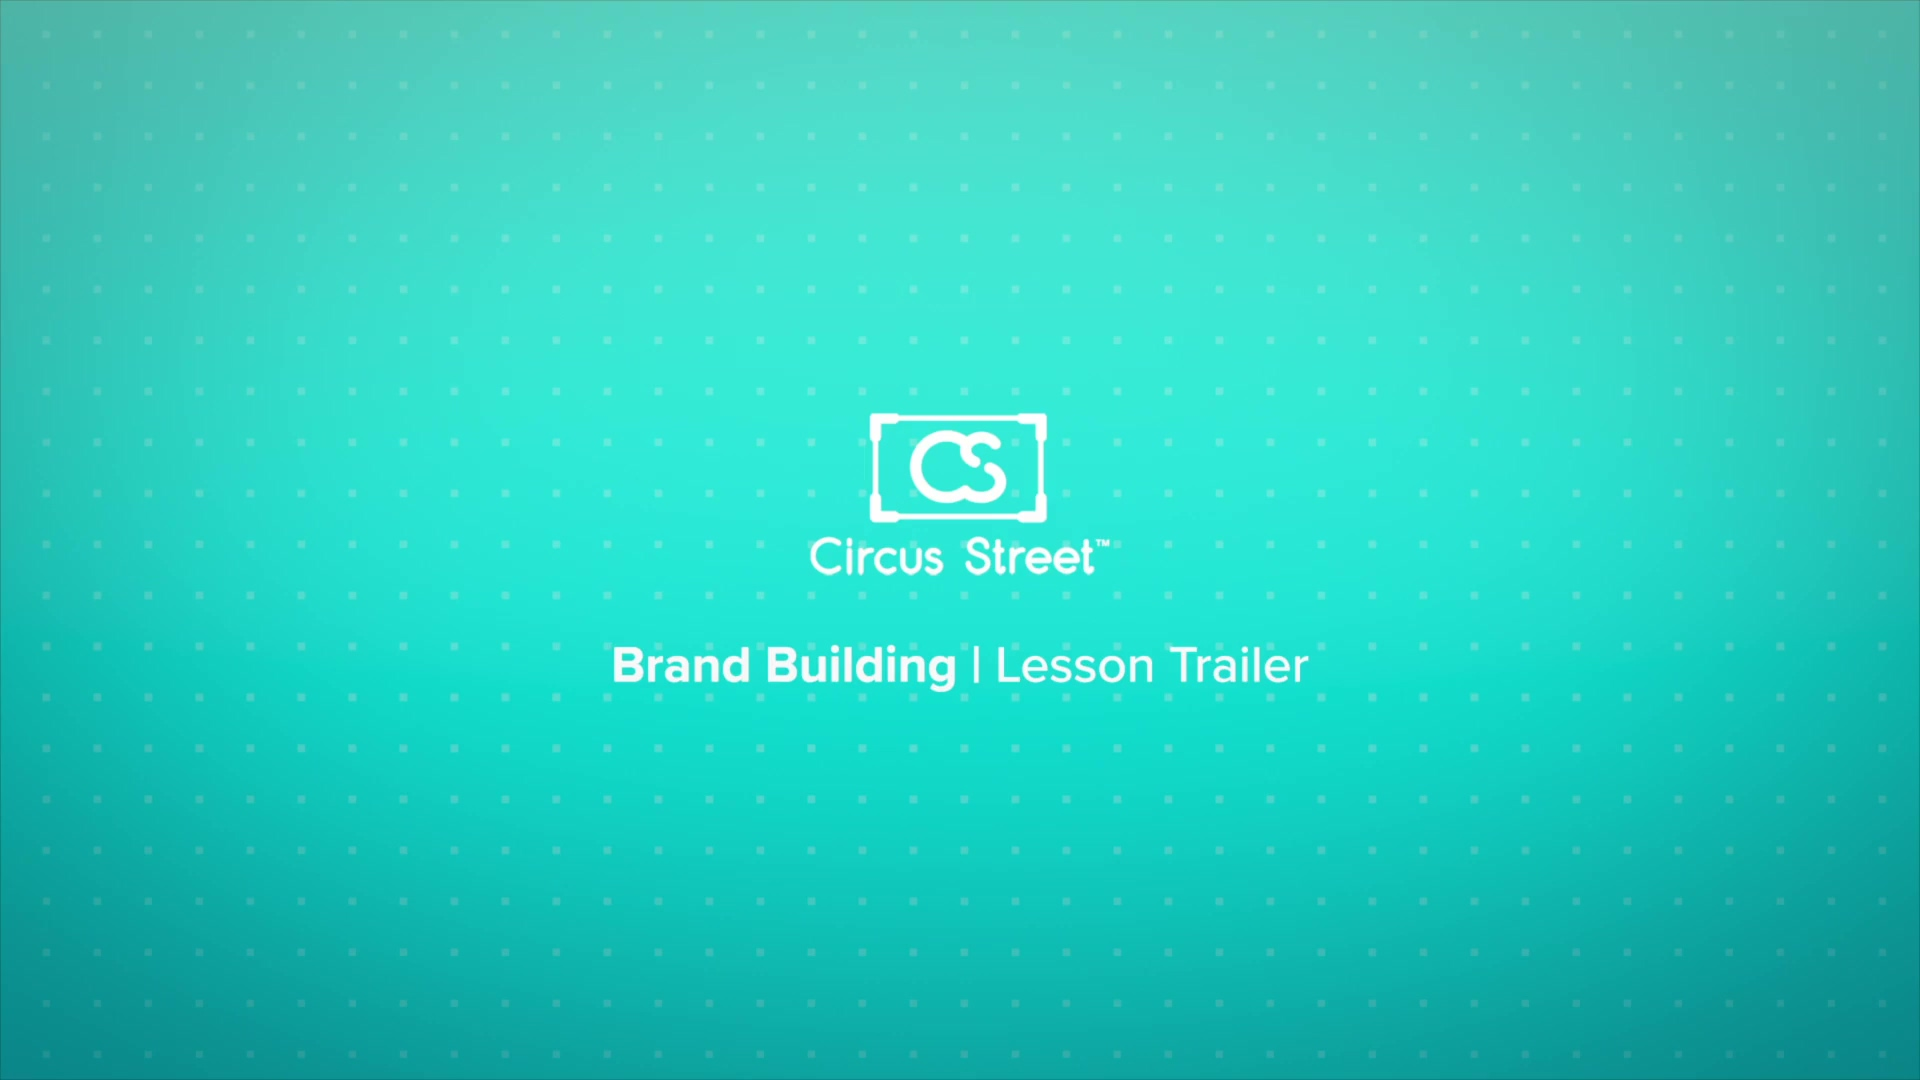 Brand Building in the Digital Age Trailer